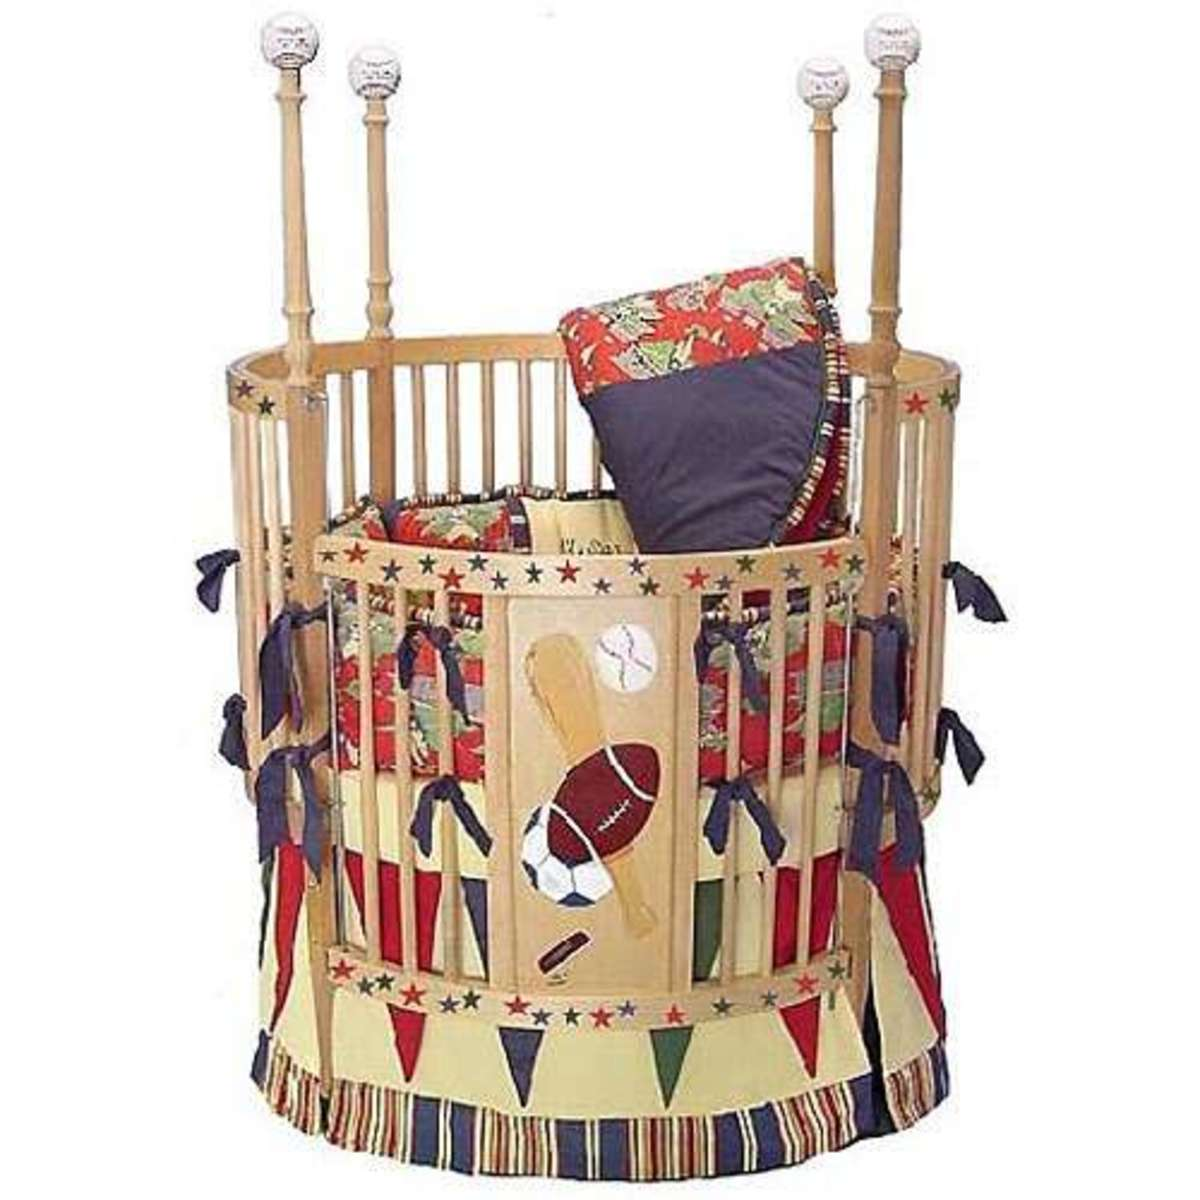 round crib decked out in various sport themes - football baseball topped spindles and more